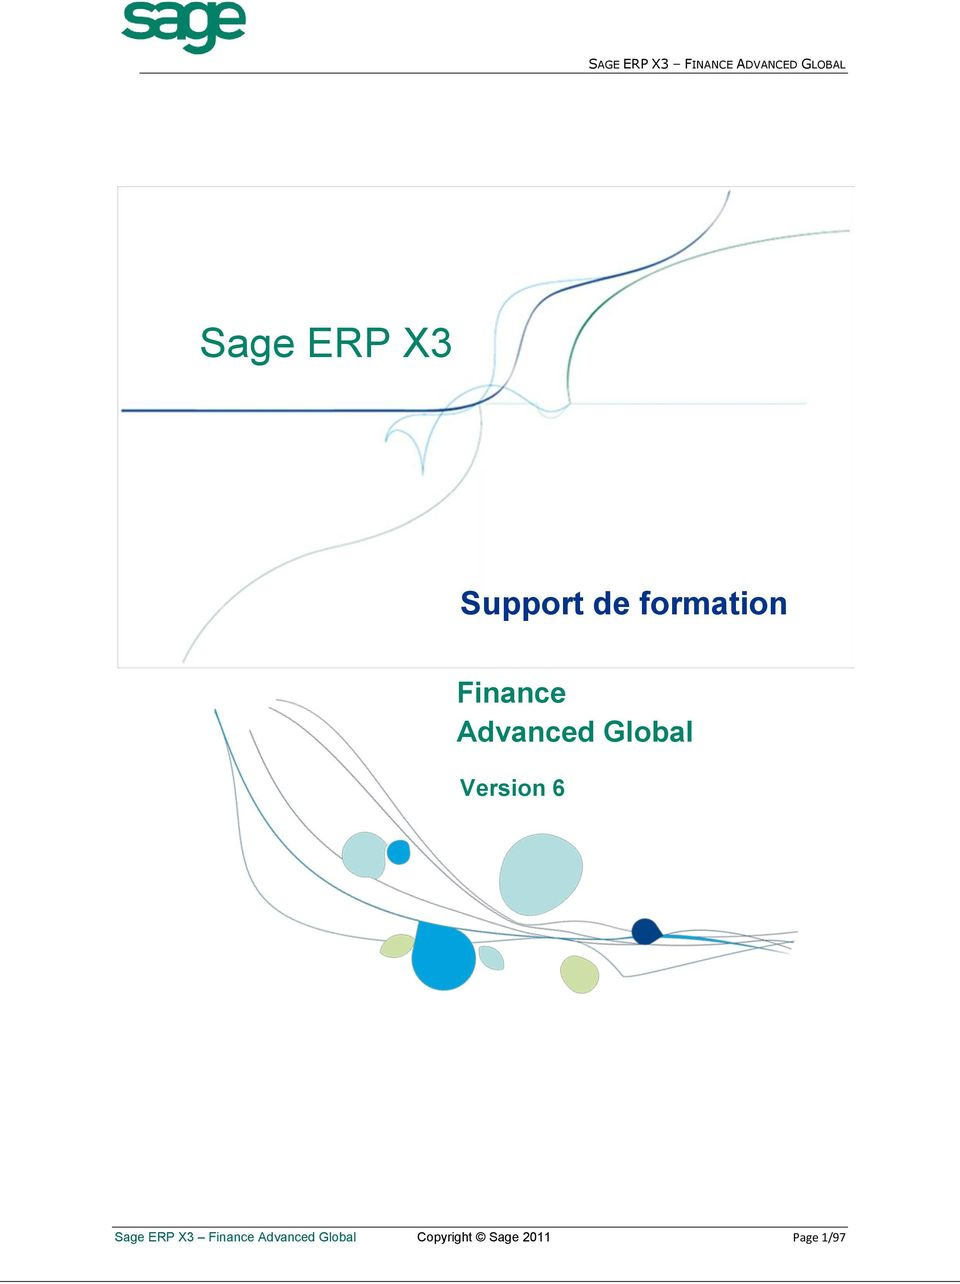 6 Sage ERP X3 Finance Advanced